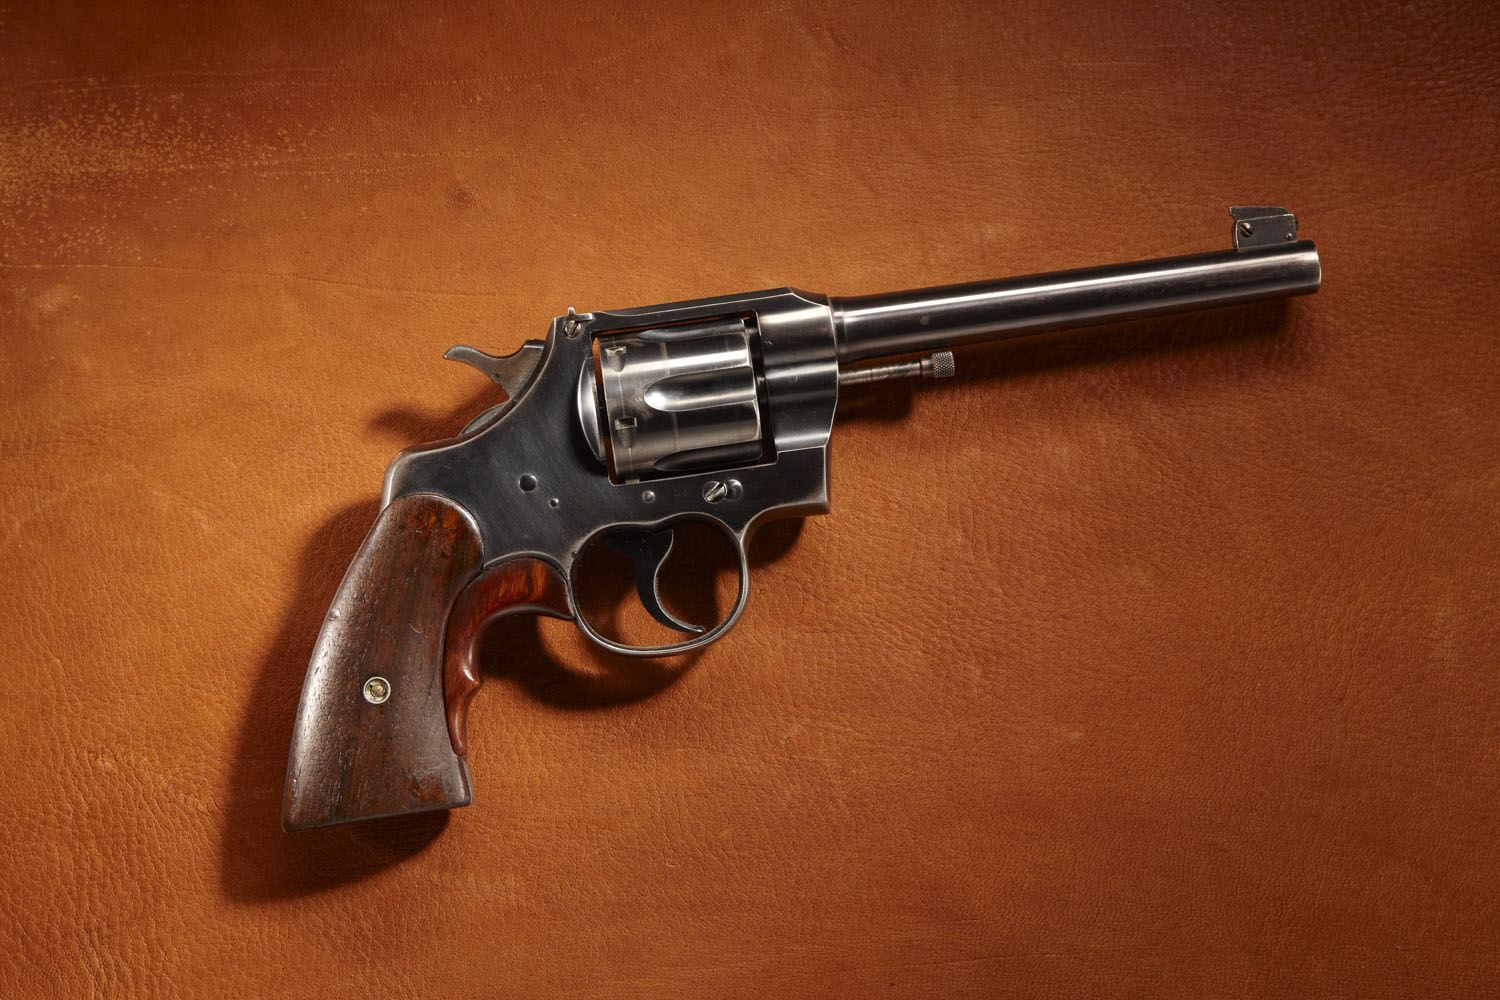 Exhibition Shooter Arlayne Brown's Colt Revolver